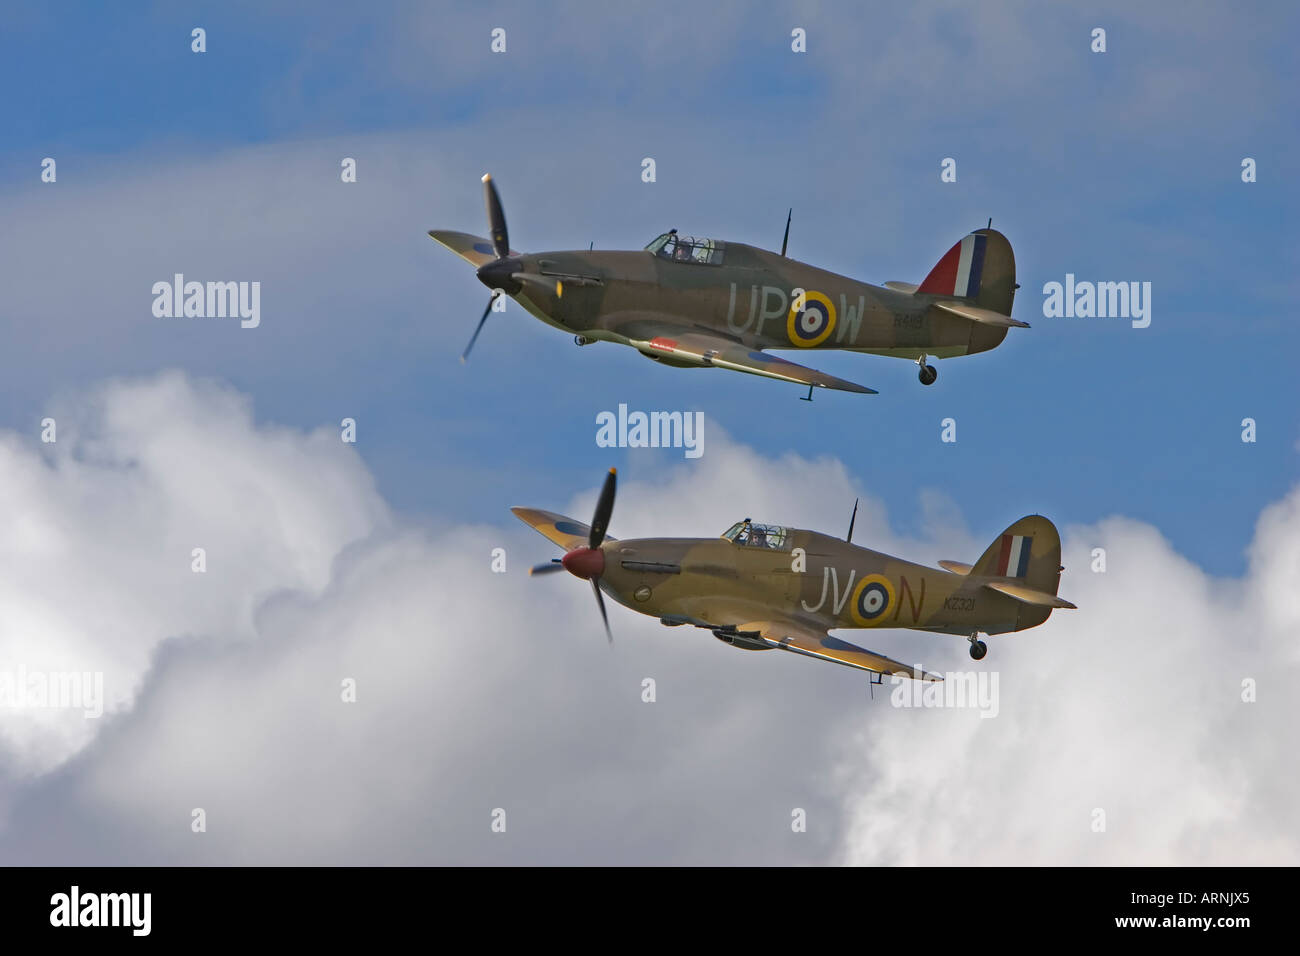 Two Hawker Hurricanes flying in formation - Stock Image